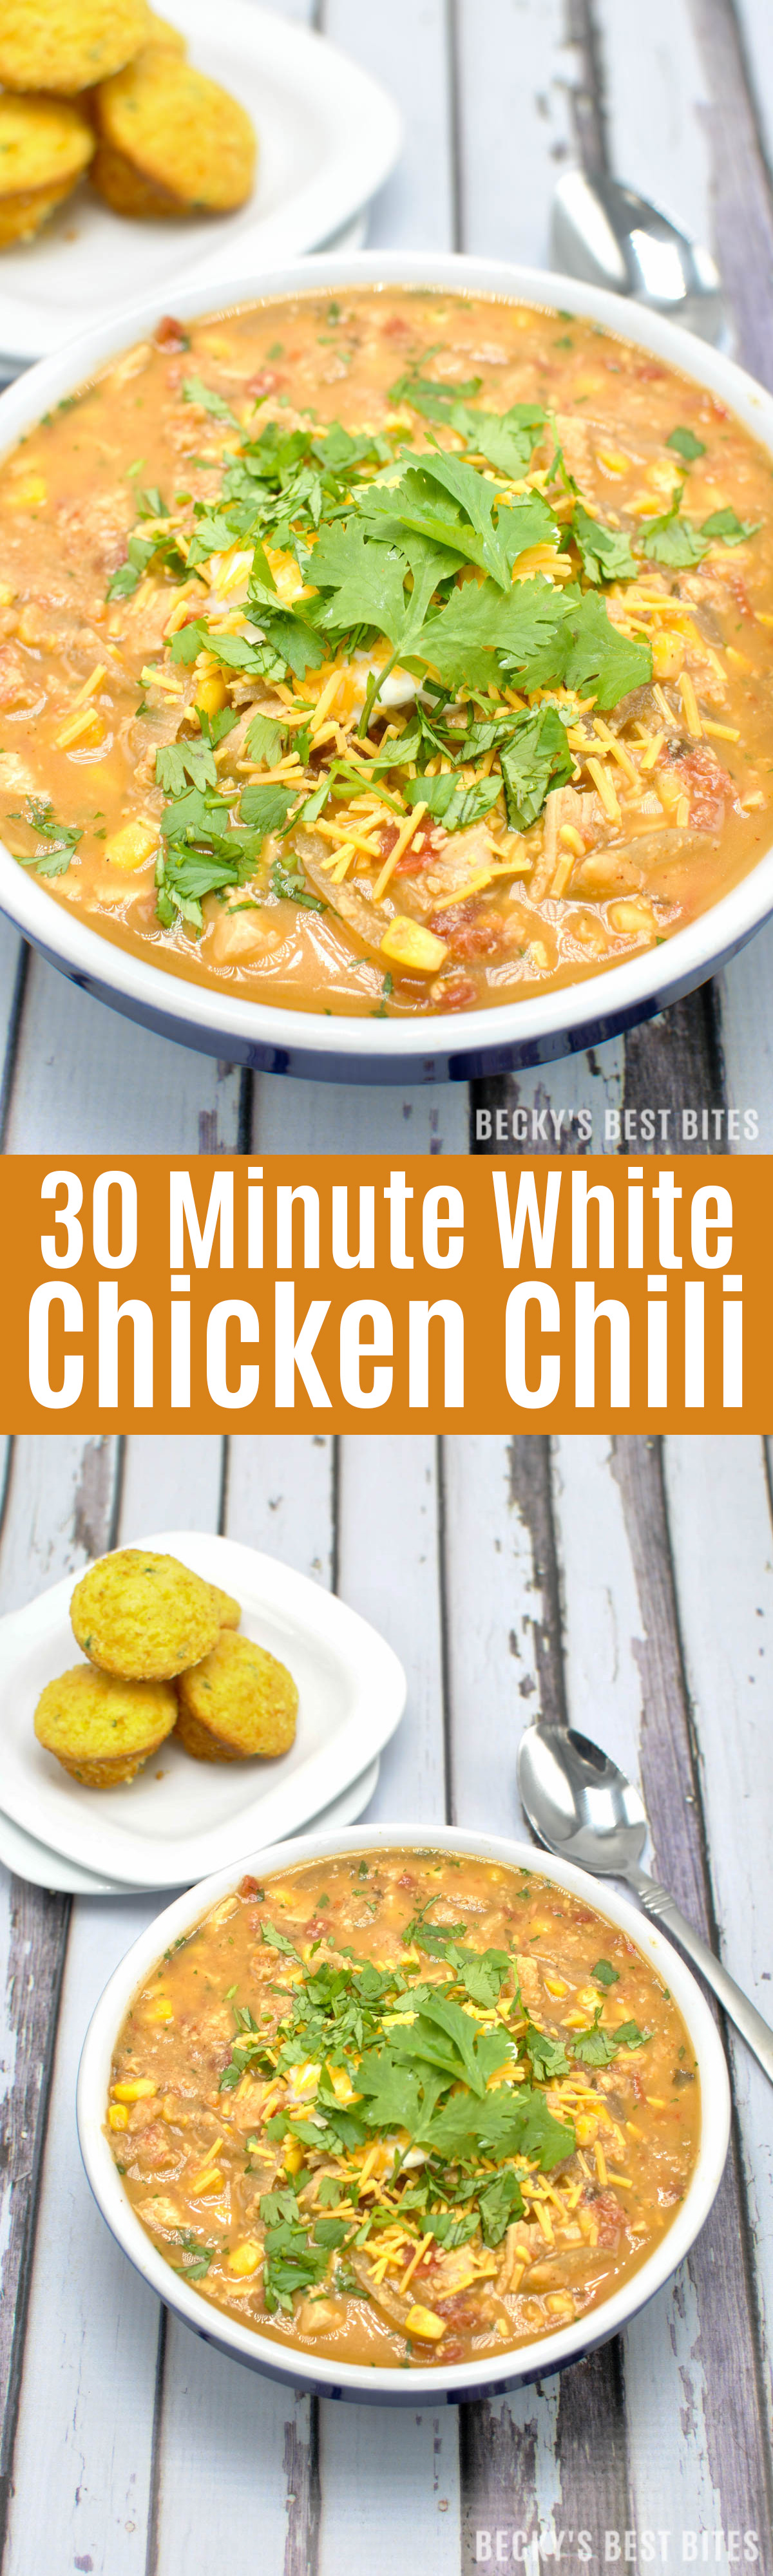 30 Minute White Chicken Chili is packed with lean chicken breast, beans, corn, tomatoes, green chilis, smoky spices and fresh cilantro for any game day spread and perfect for the coldest of winter nights! | beckysbestbites.com